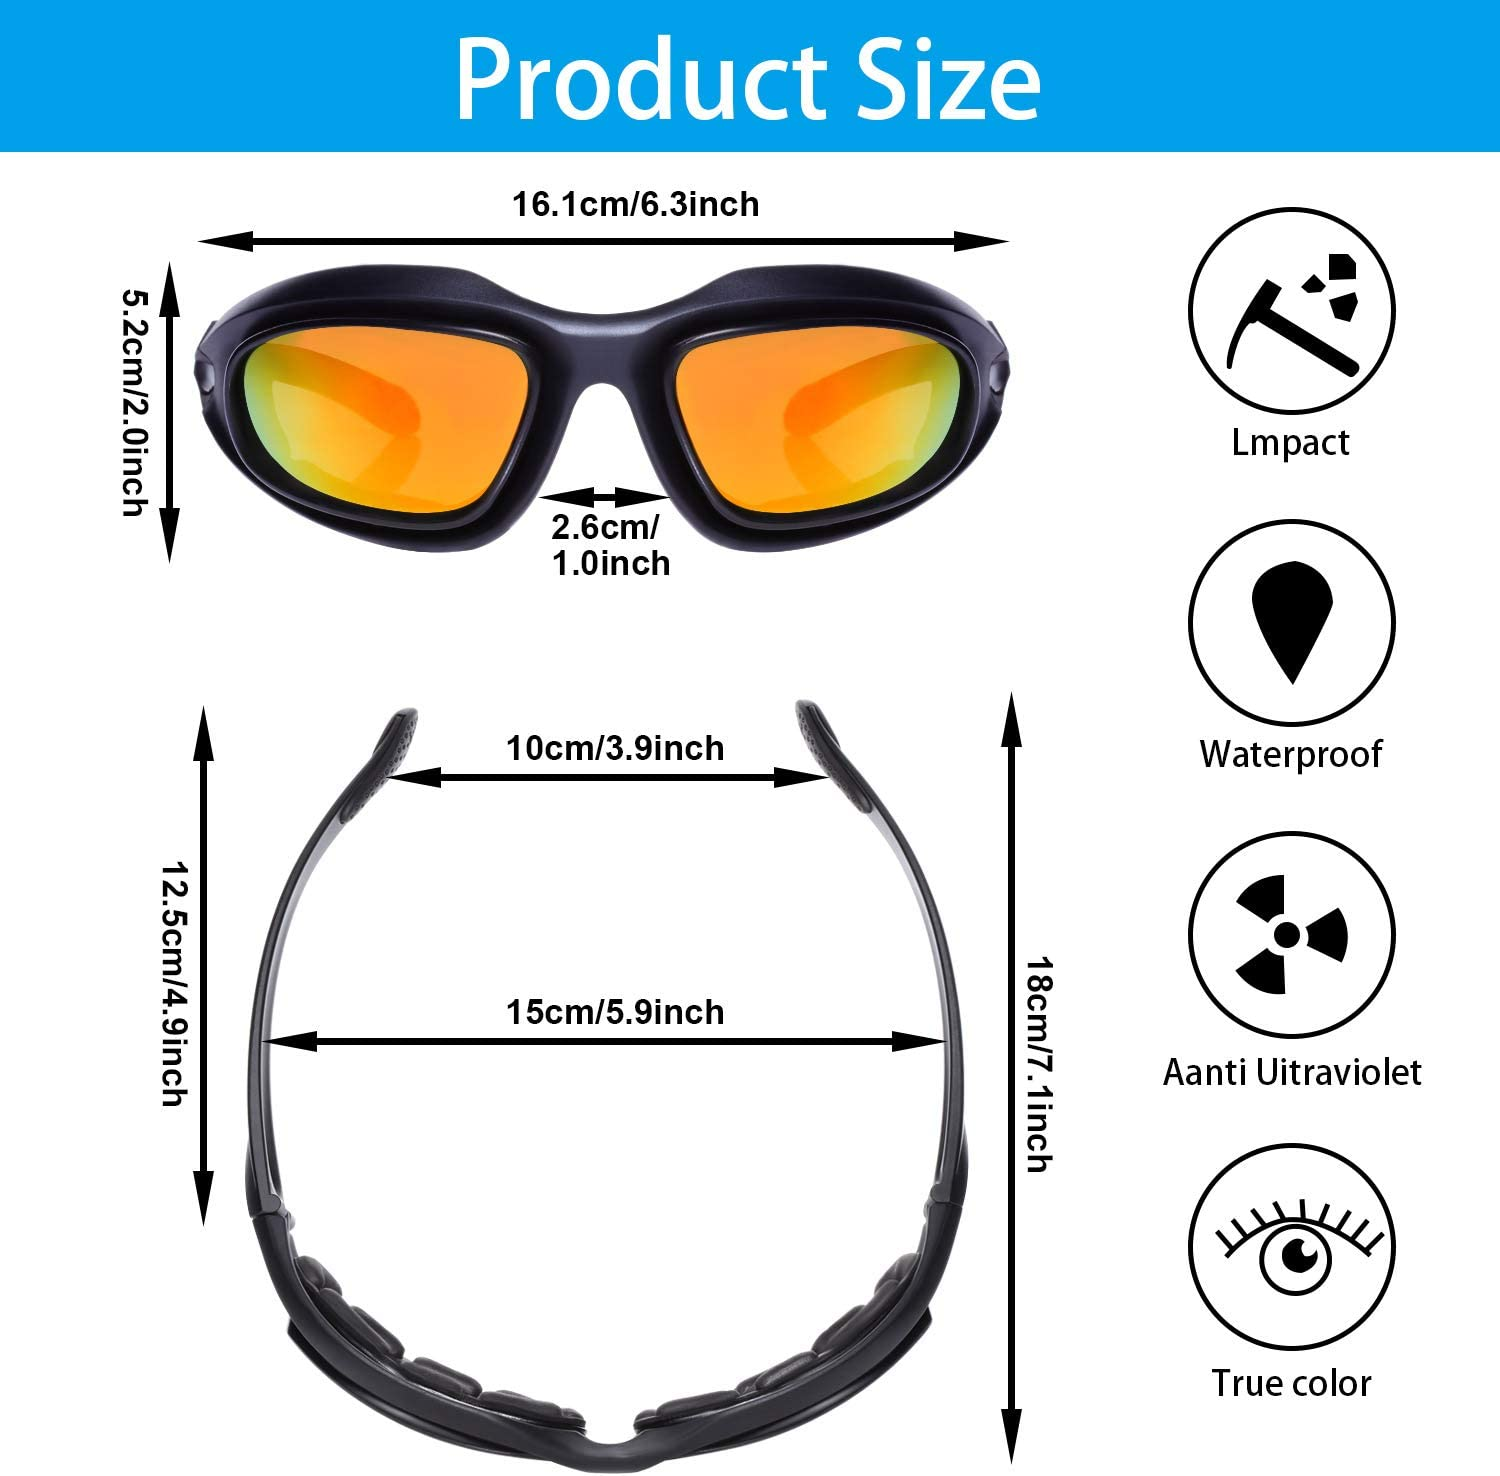 Glasses Case and Cleaning Cloth for Outdoor Activity Sport Pouch Polarized Motorcycle Riding Glasses Padded Glasses Frame Goggle Kit Include 4 Lens Kit Strap